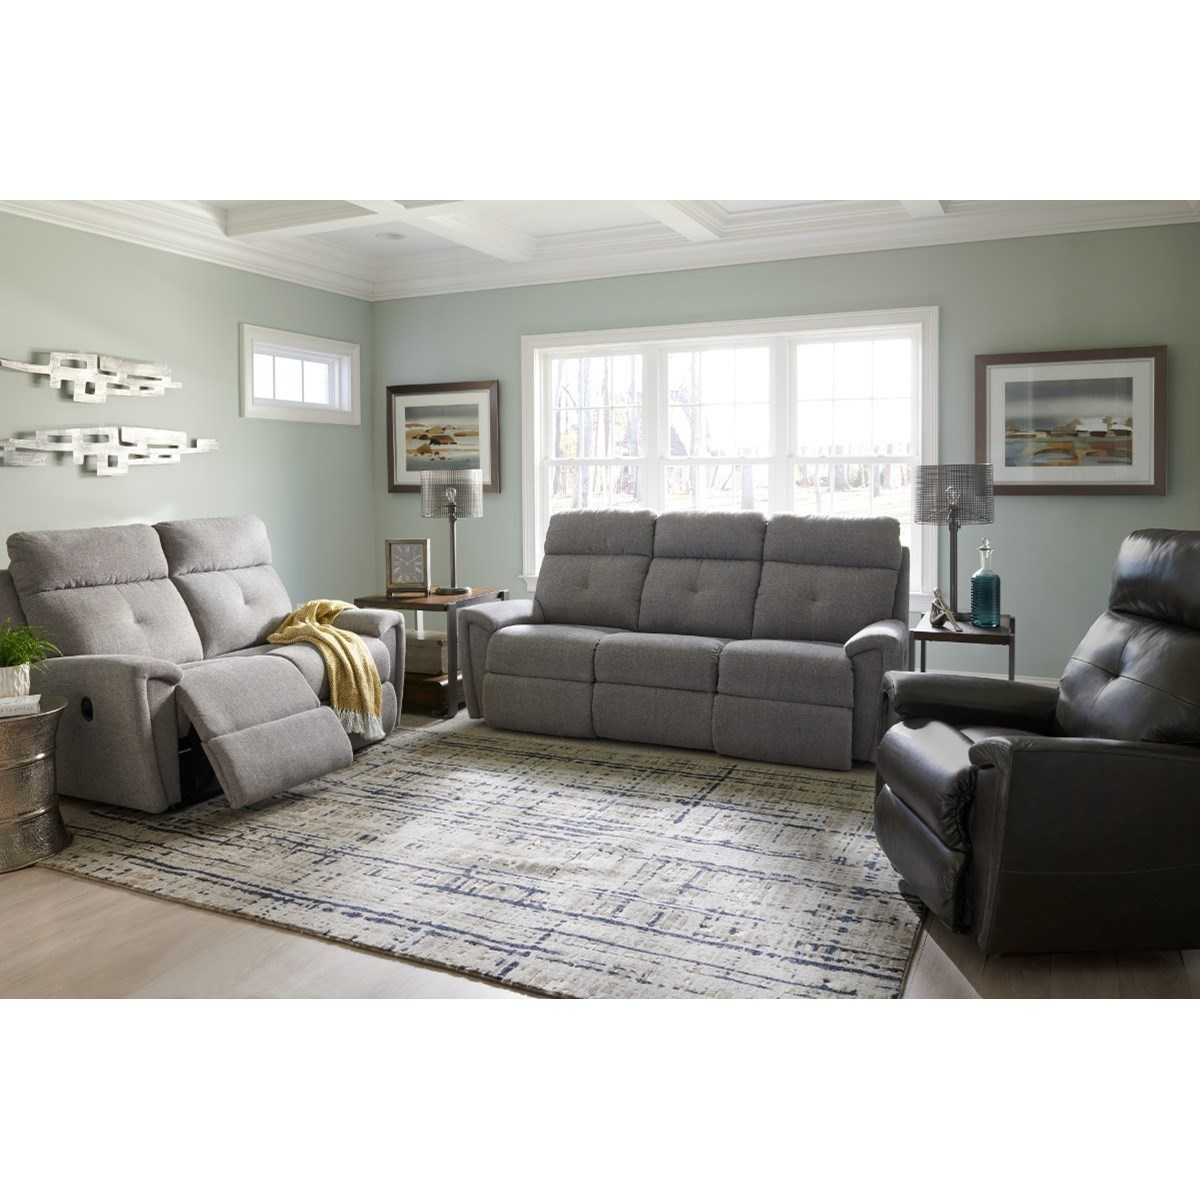 Douglas Power Reclining Living Room Group by La-Z-Boy at Bennett's Furniture and Mattresses